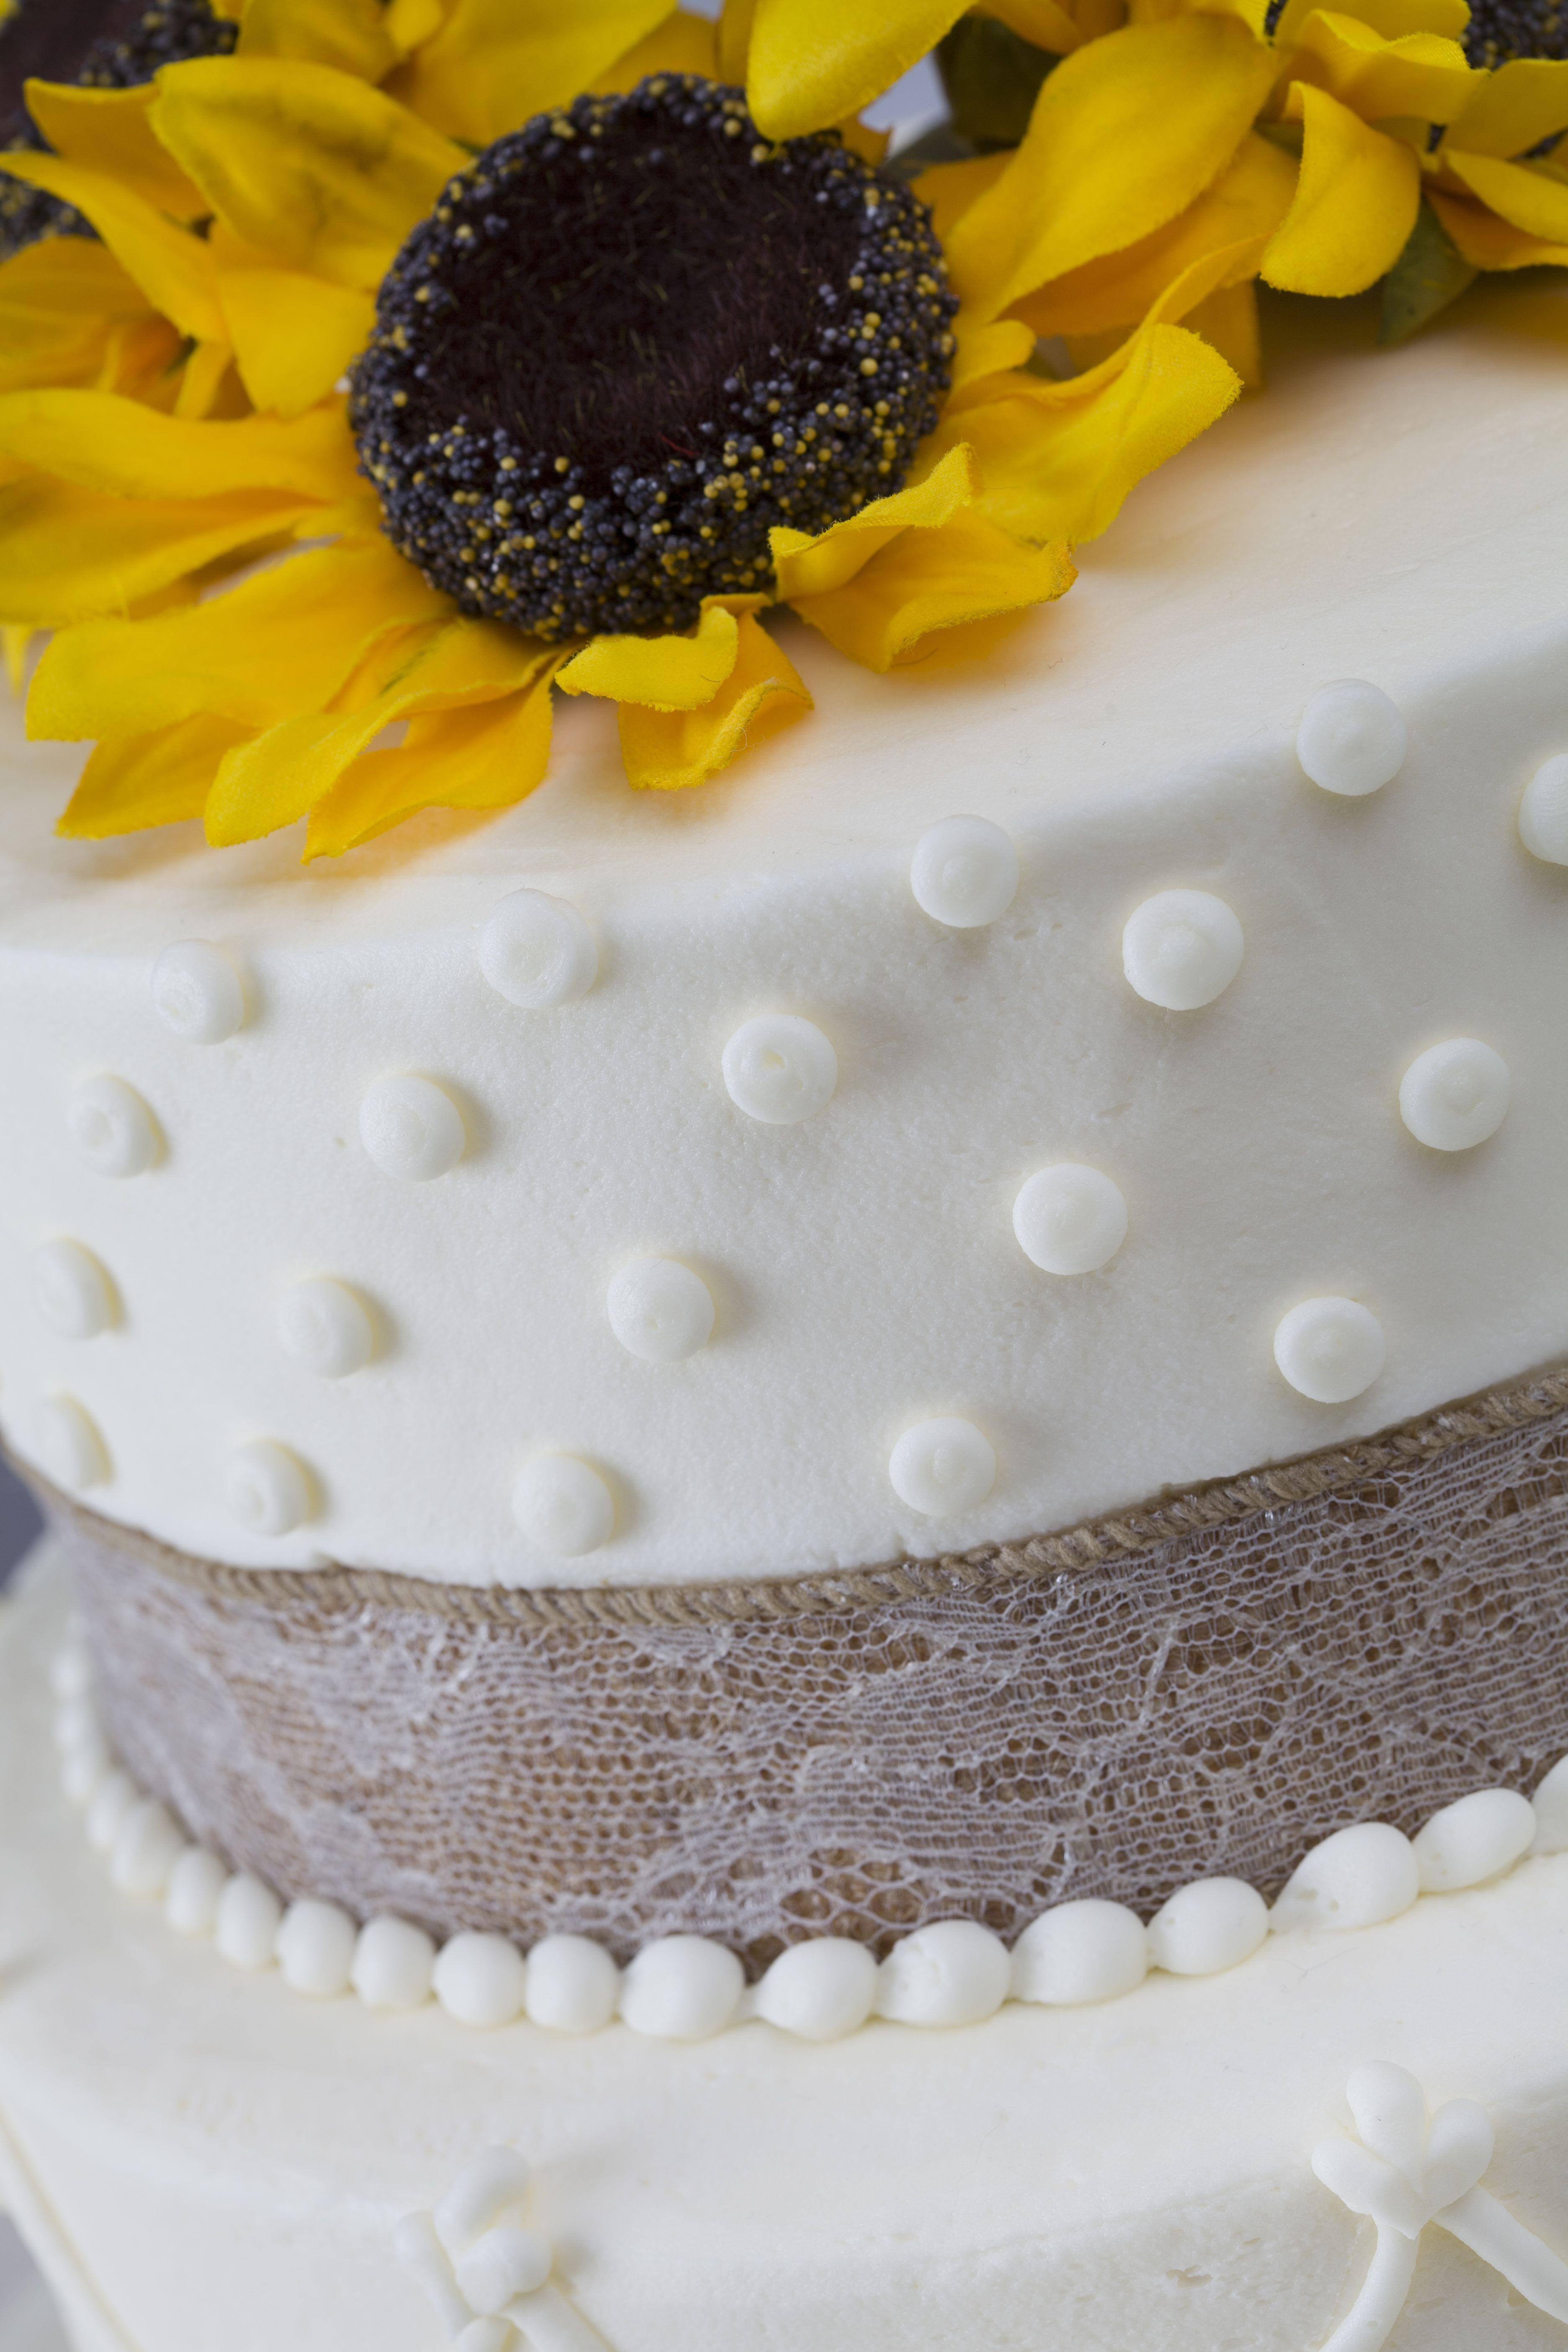 Country Chic Close Up From Martin S Bake Shoppe Wedding Cakes With Cupcakes Wedding Cakes Cake